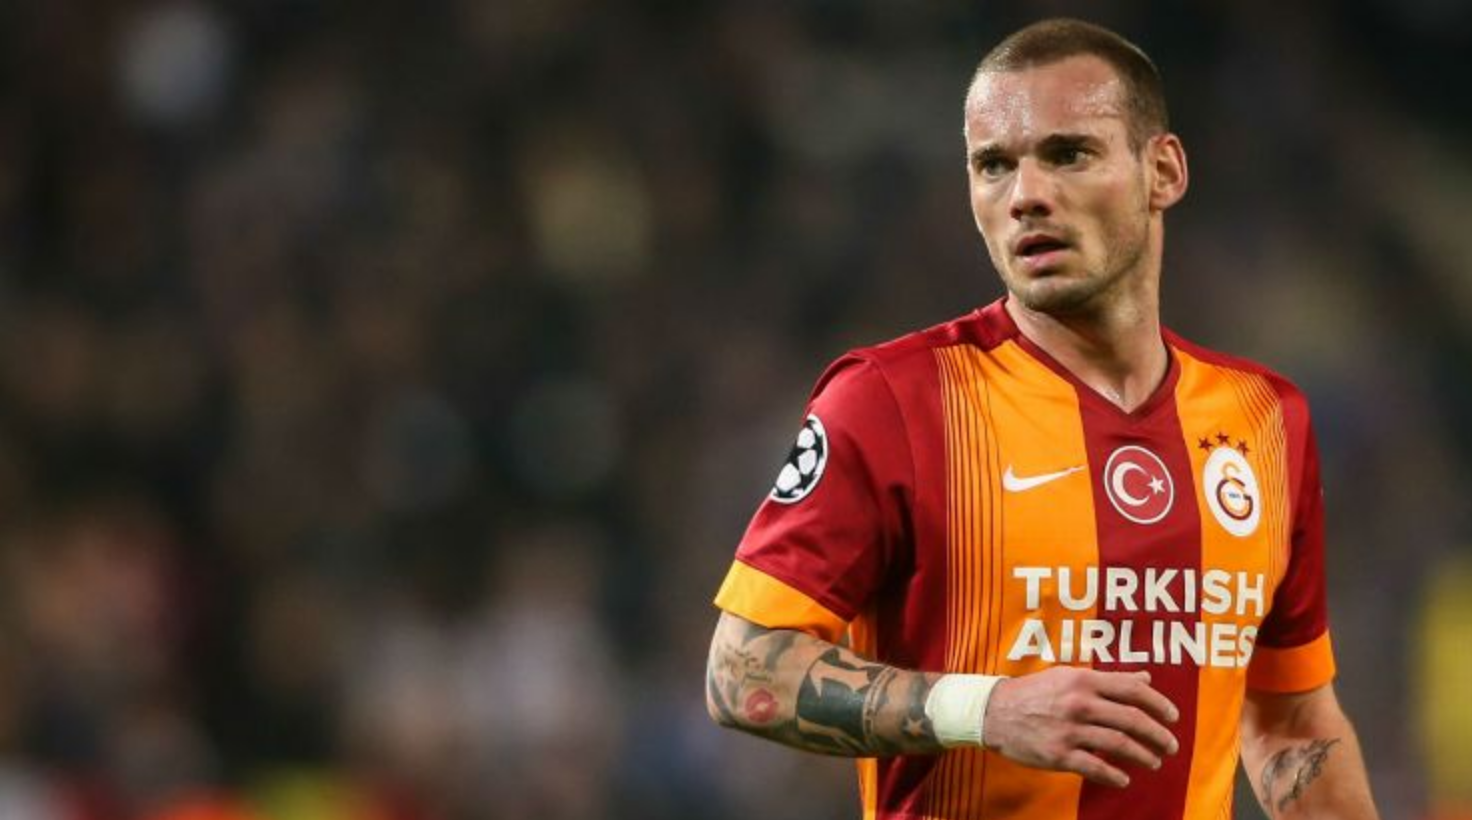 https://static.fanpage.it/wp-content/uploads/sites/9/2017/06/sneijder-galatasaray.png